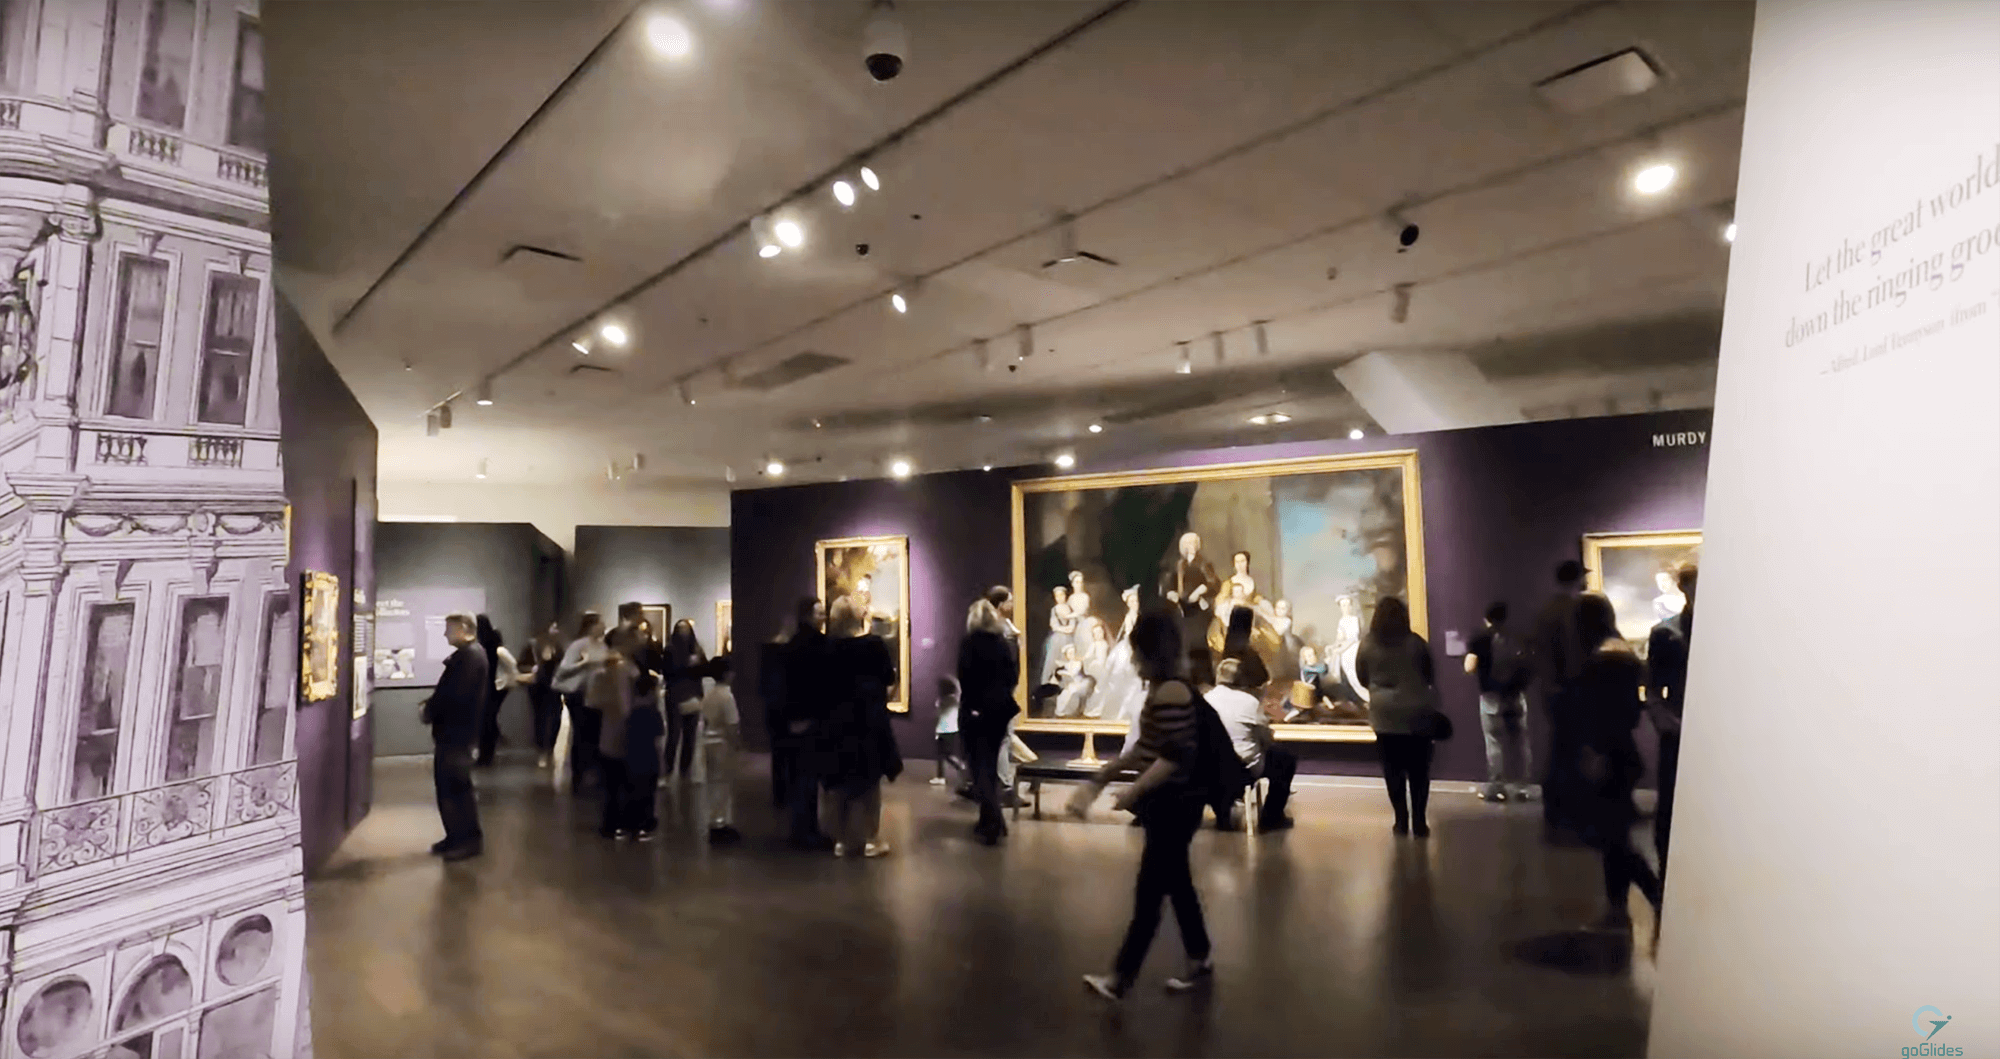 Weekend at Denver Art Museum - Colorado (Vlog)